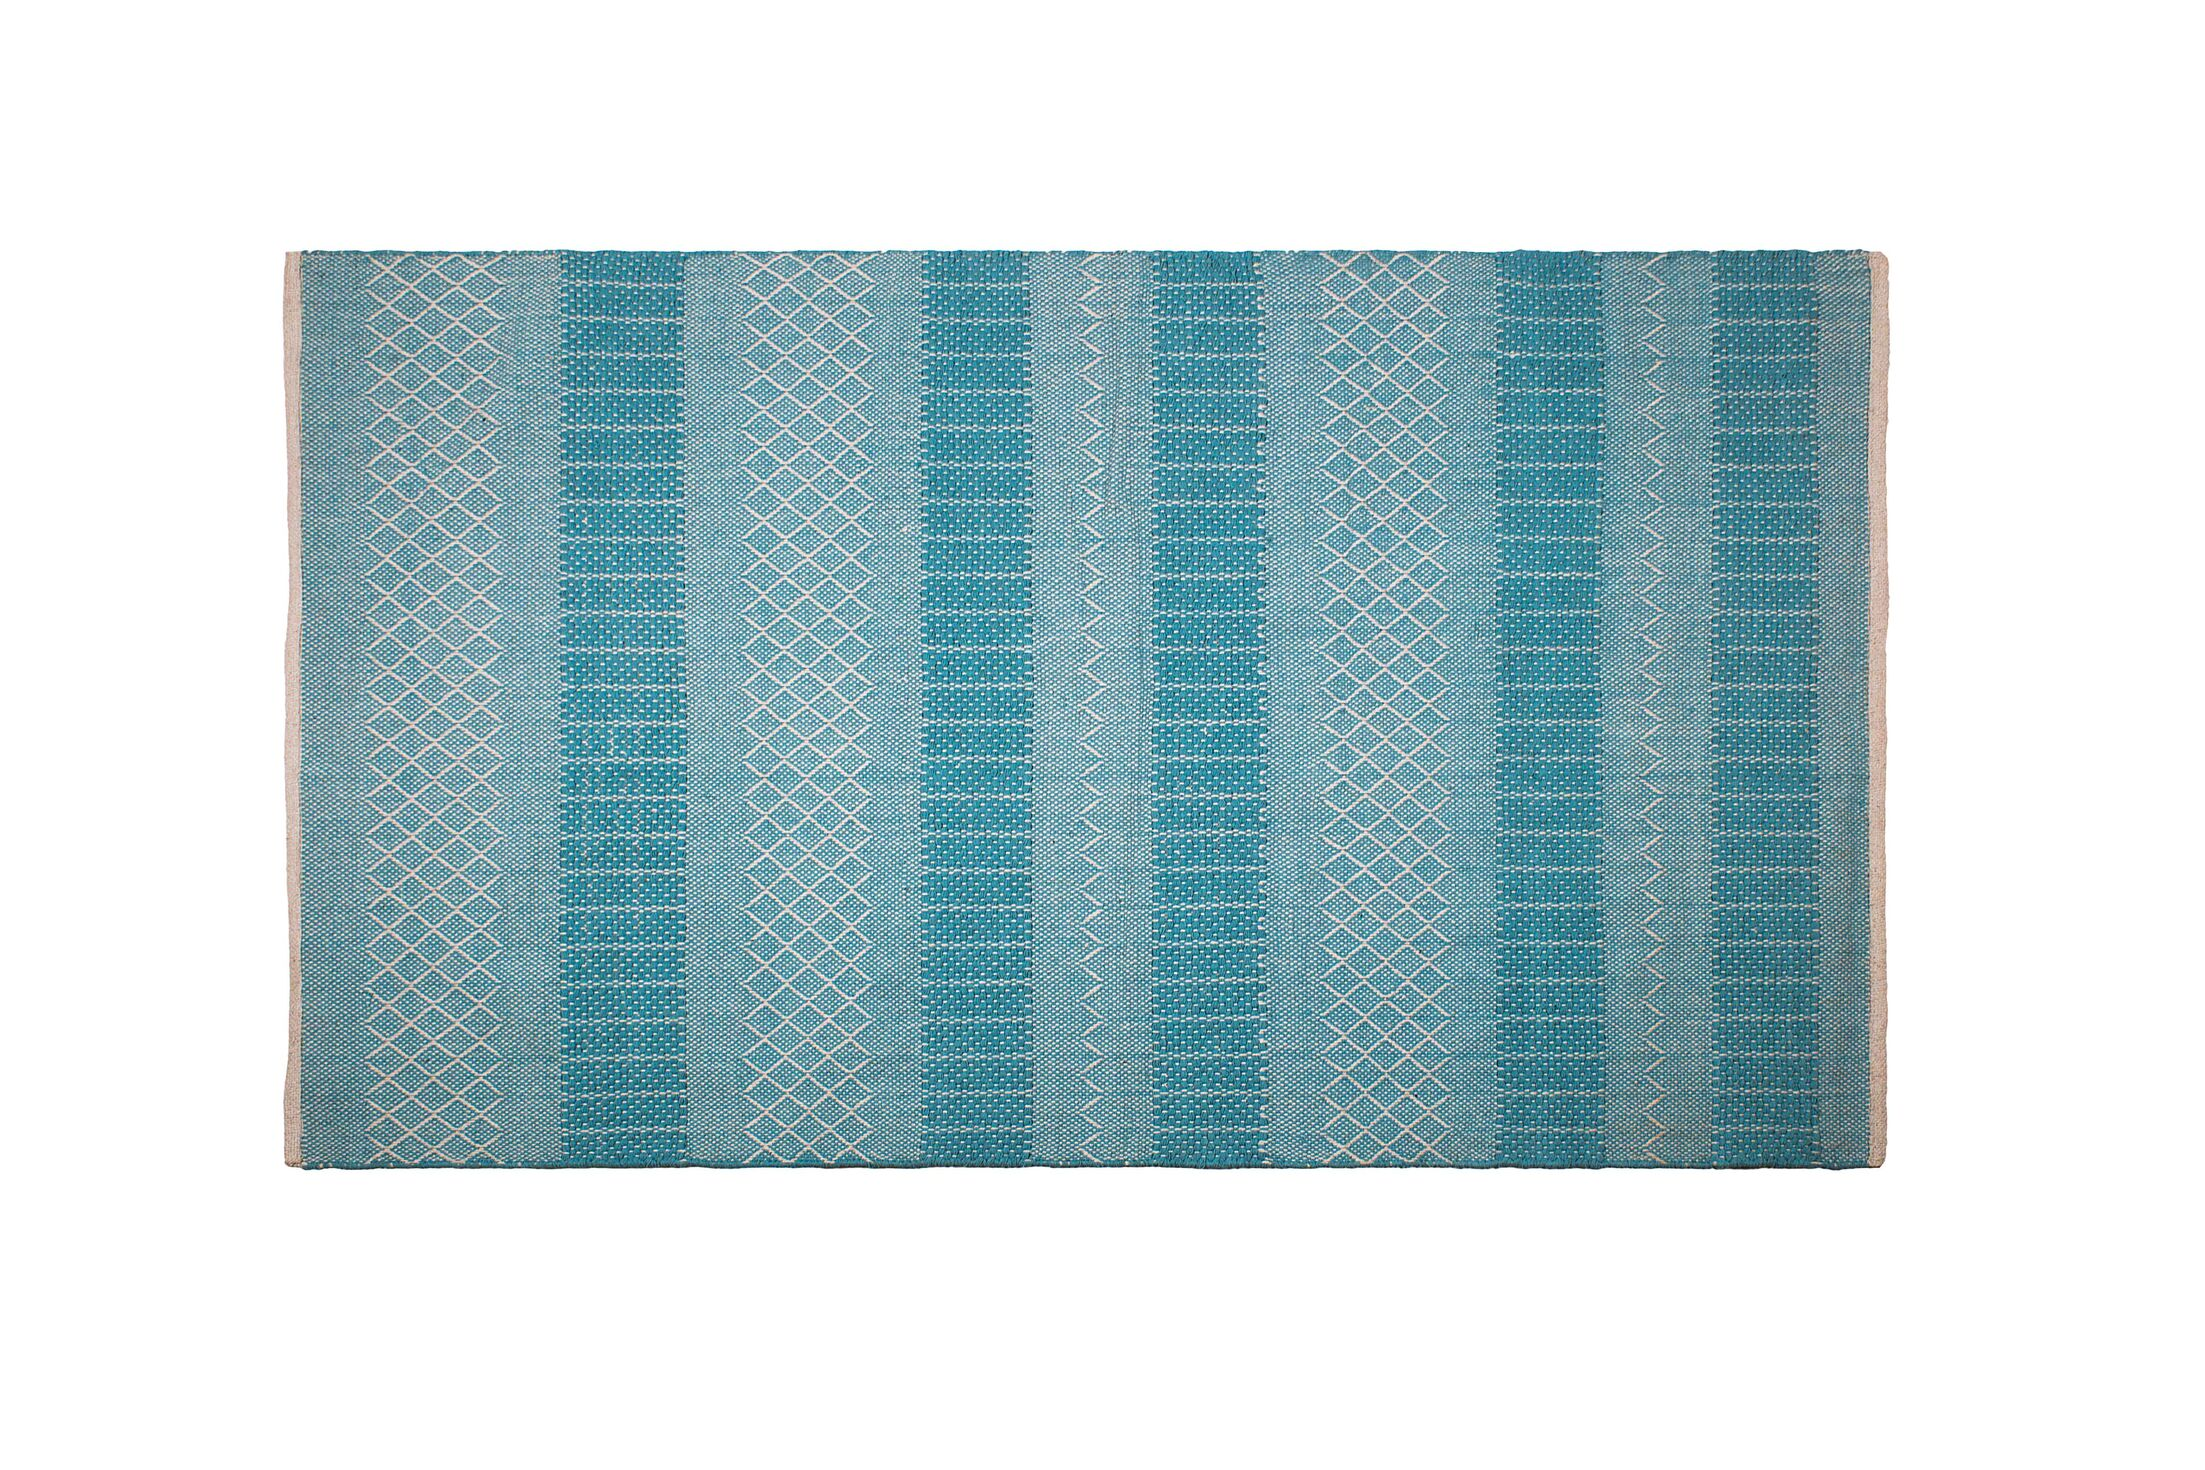 Chapdelaine Hand-Woven Cotton Sky Blue Rug Rug Size: Rectangle 4' x 6'